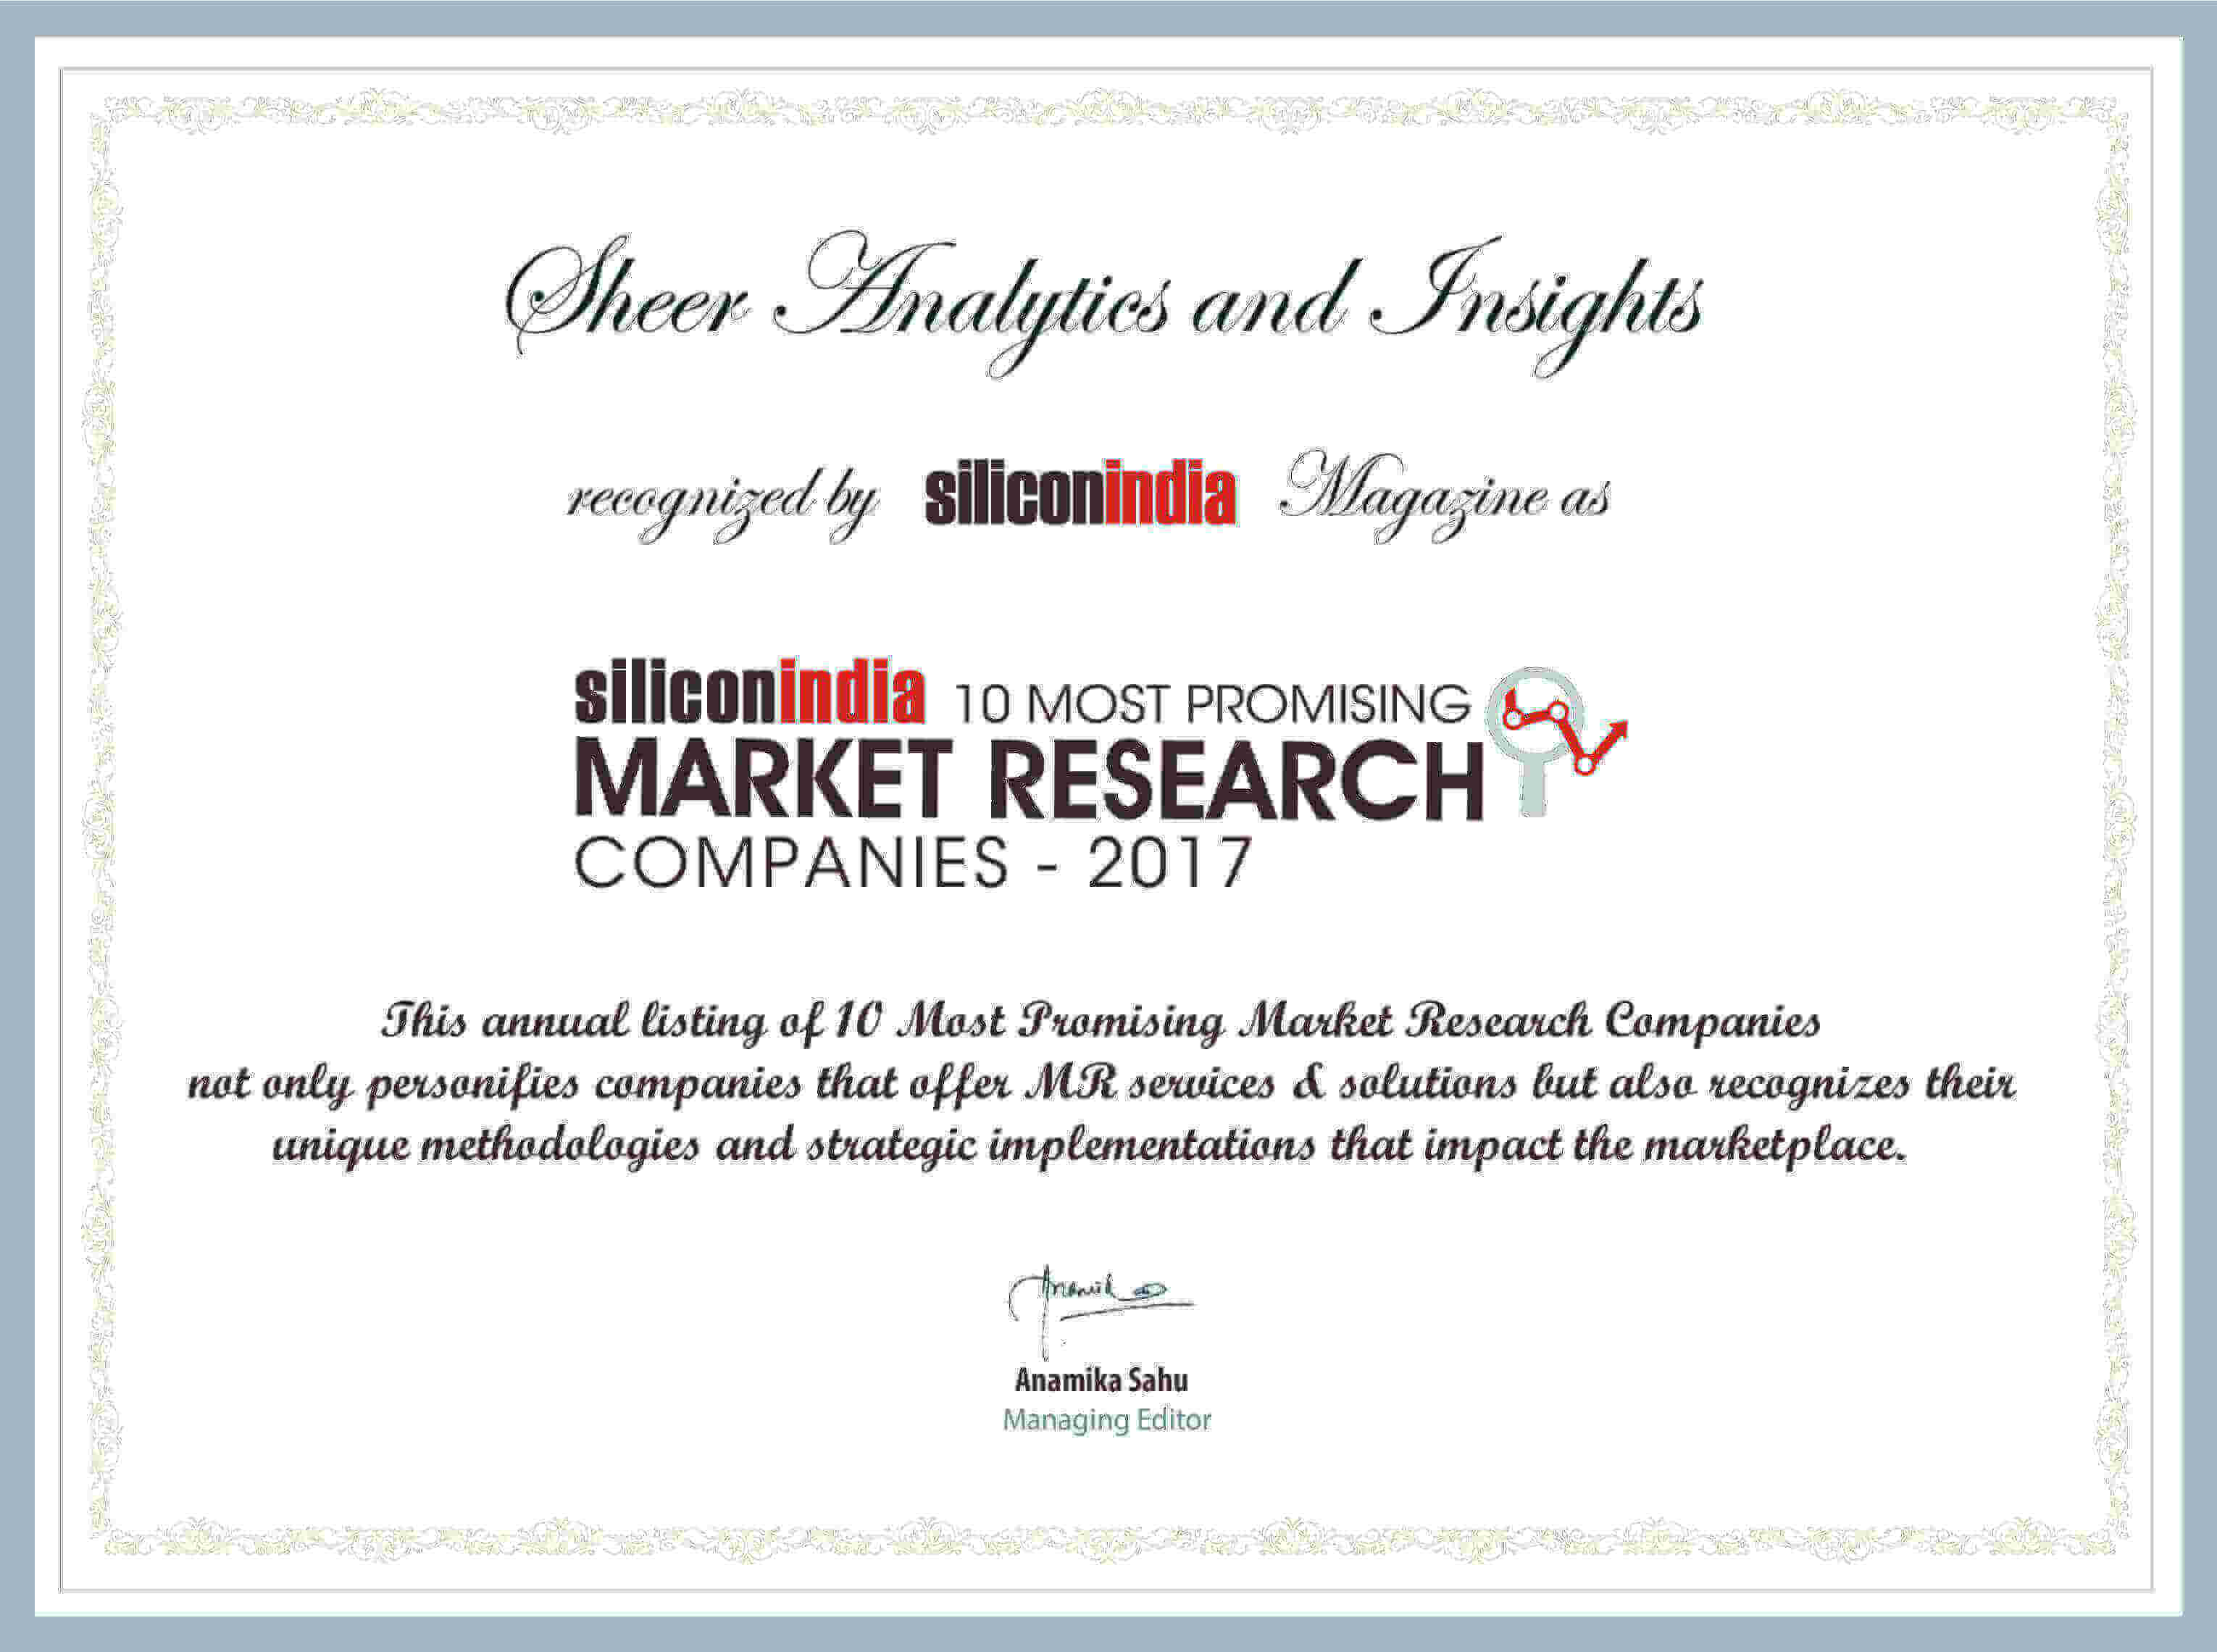 Sheer Analytics and Insights Silicon's Certificate